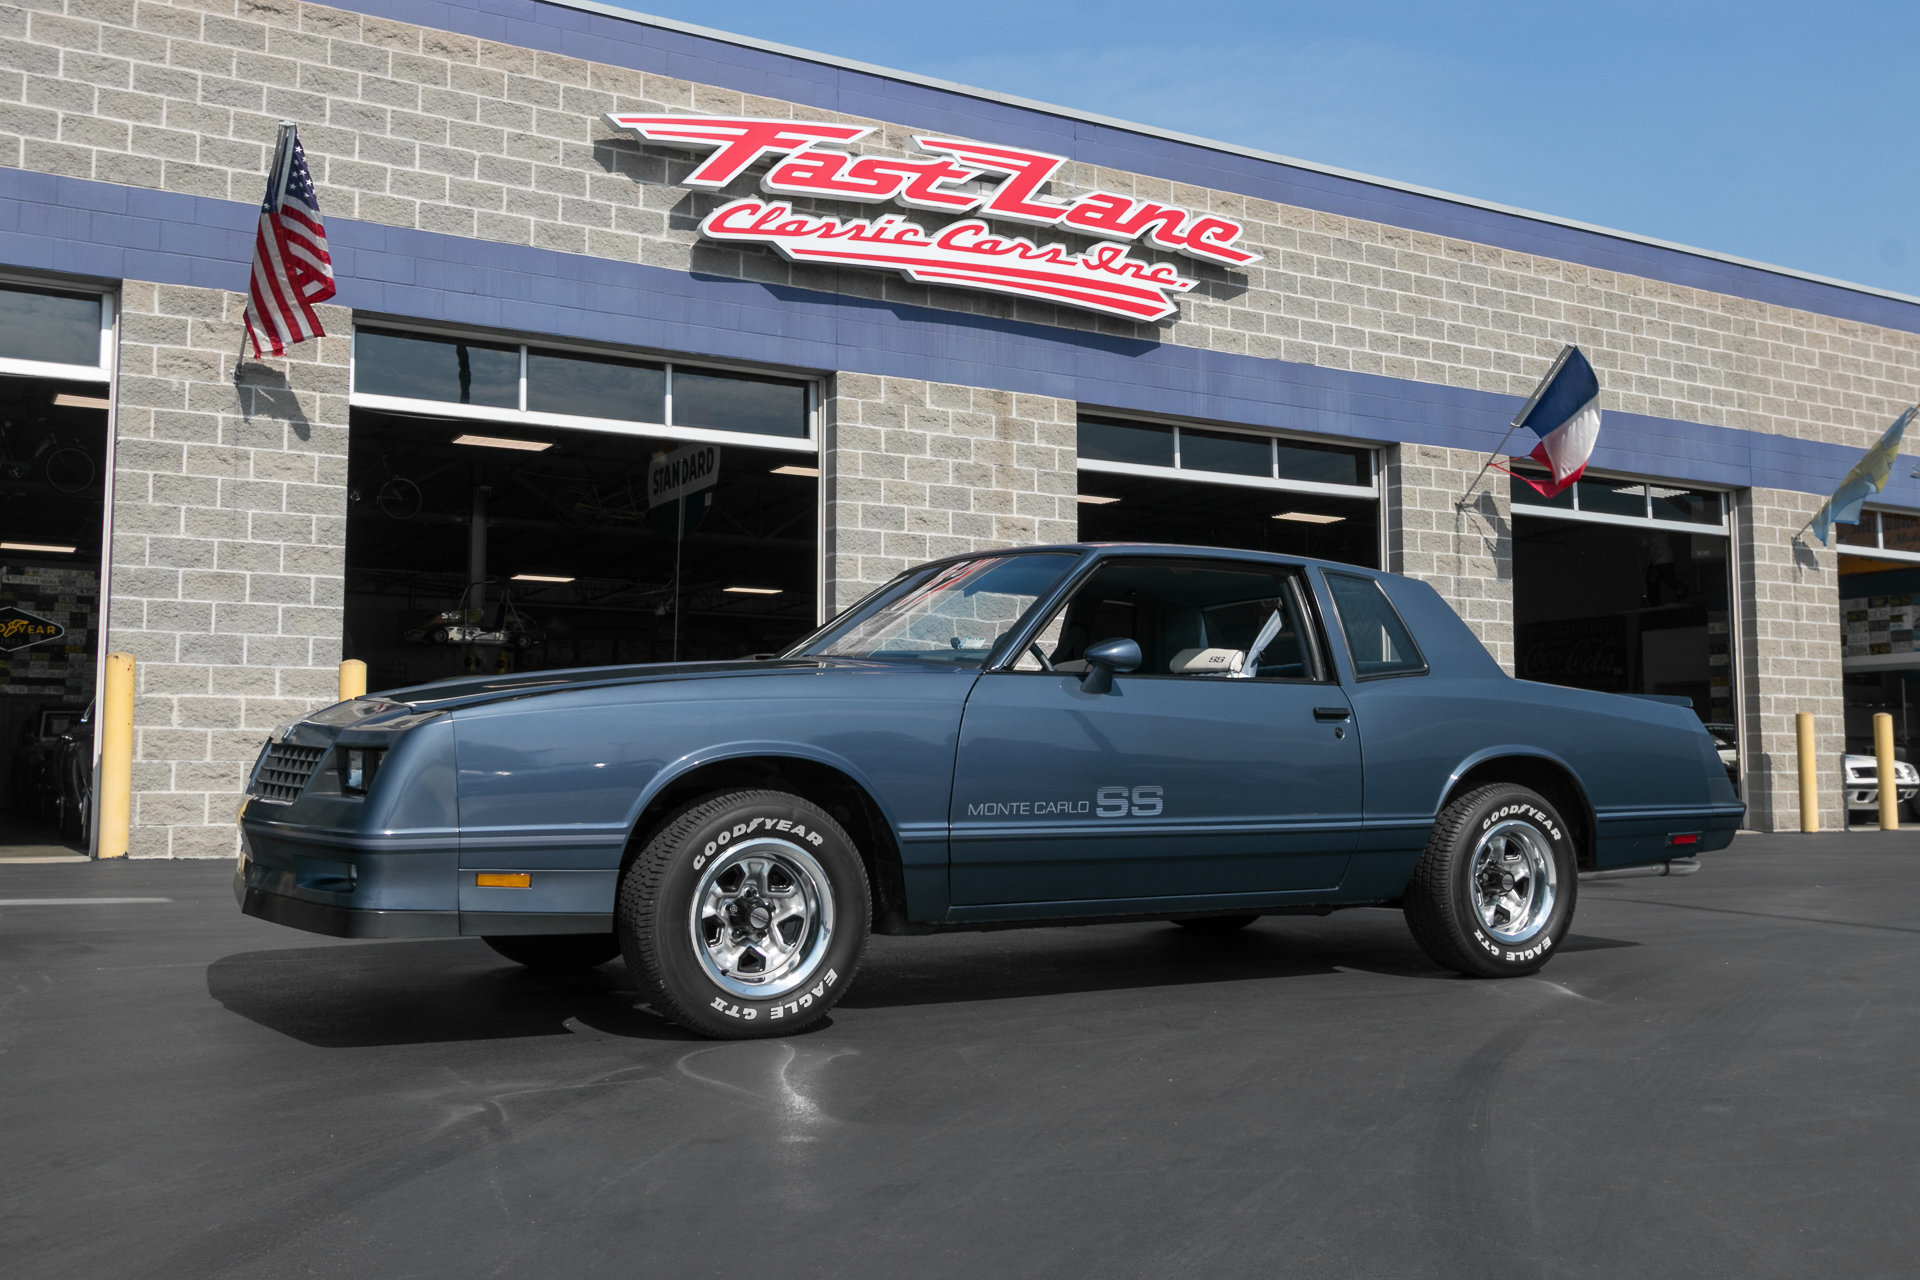 6442291b4b61e_hd_1984-chevrolet-monte-carlo-ss Take A Look About 1980 Monte Carlo for Sale with Mesmerizing Photos Cars Review